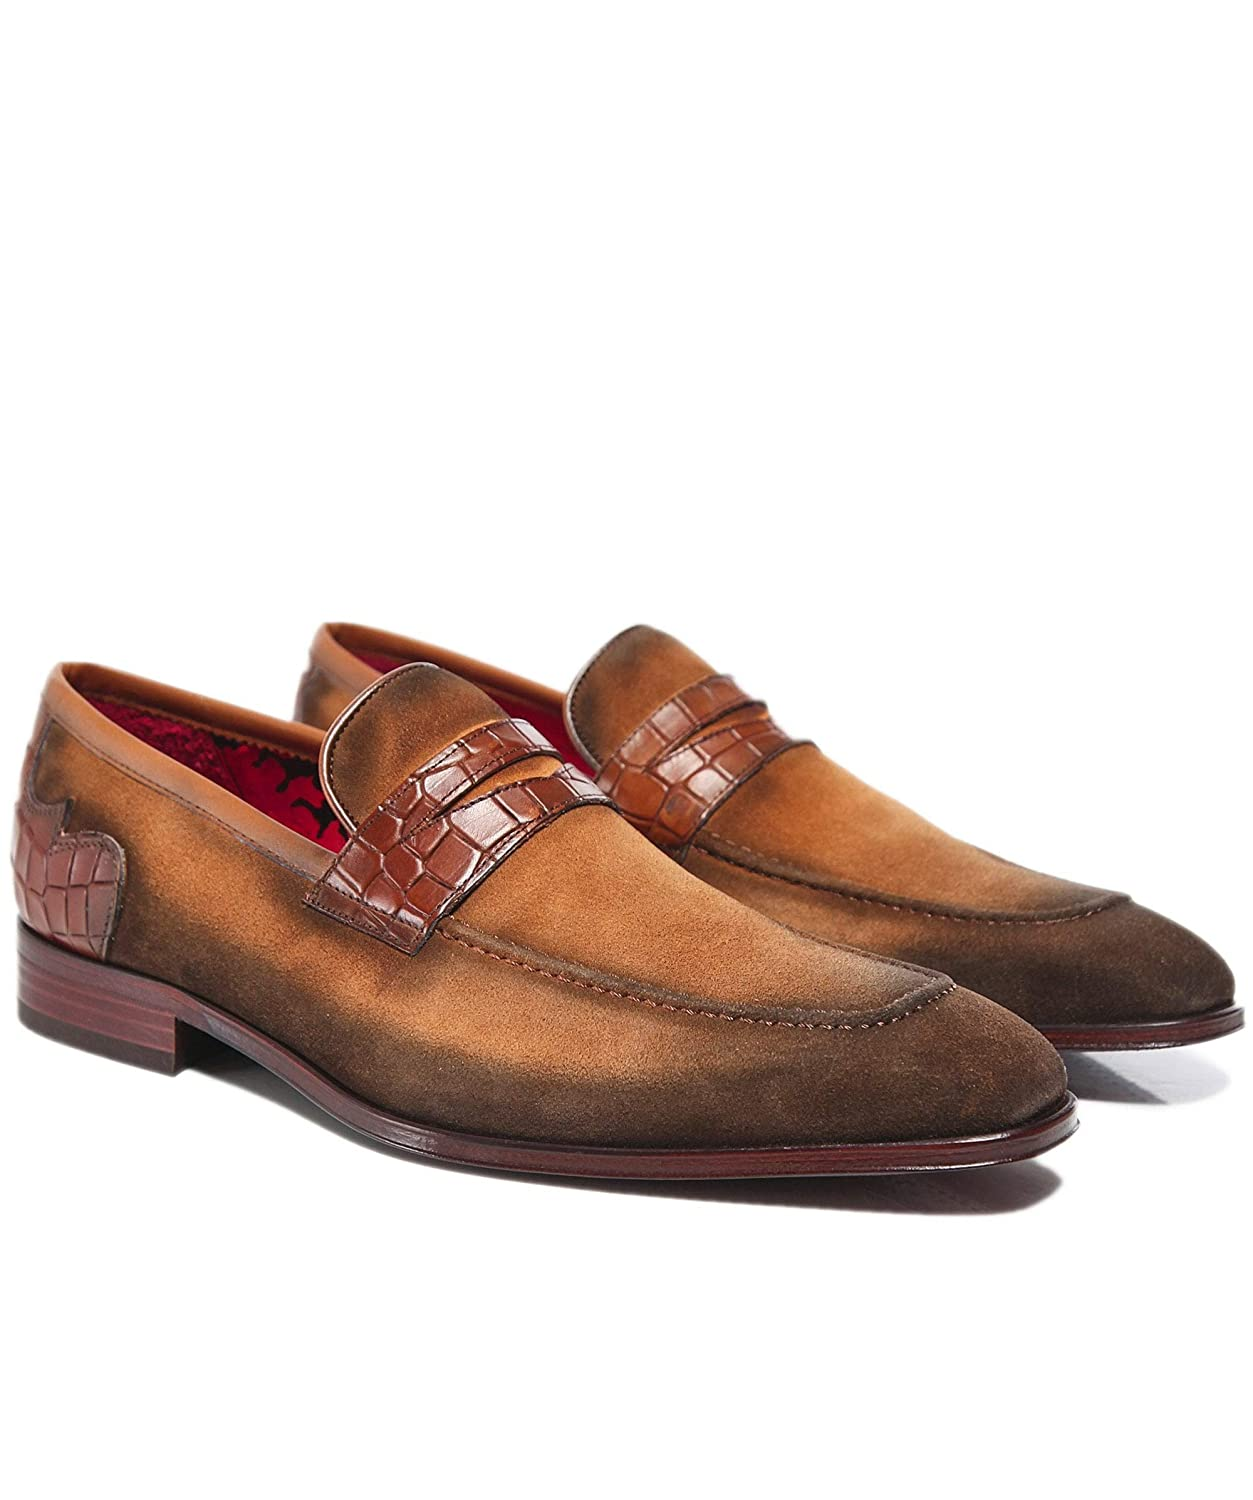 Light Brown Jeffery West Men's Burnished Suede Soprano Penny Loafers Light Brown